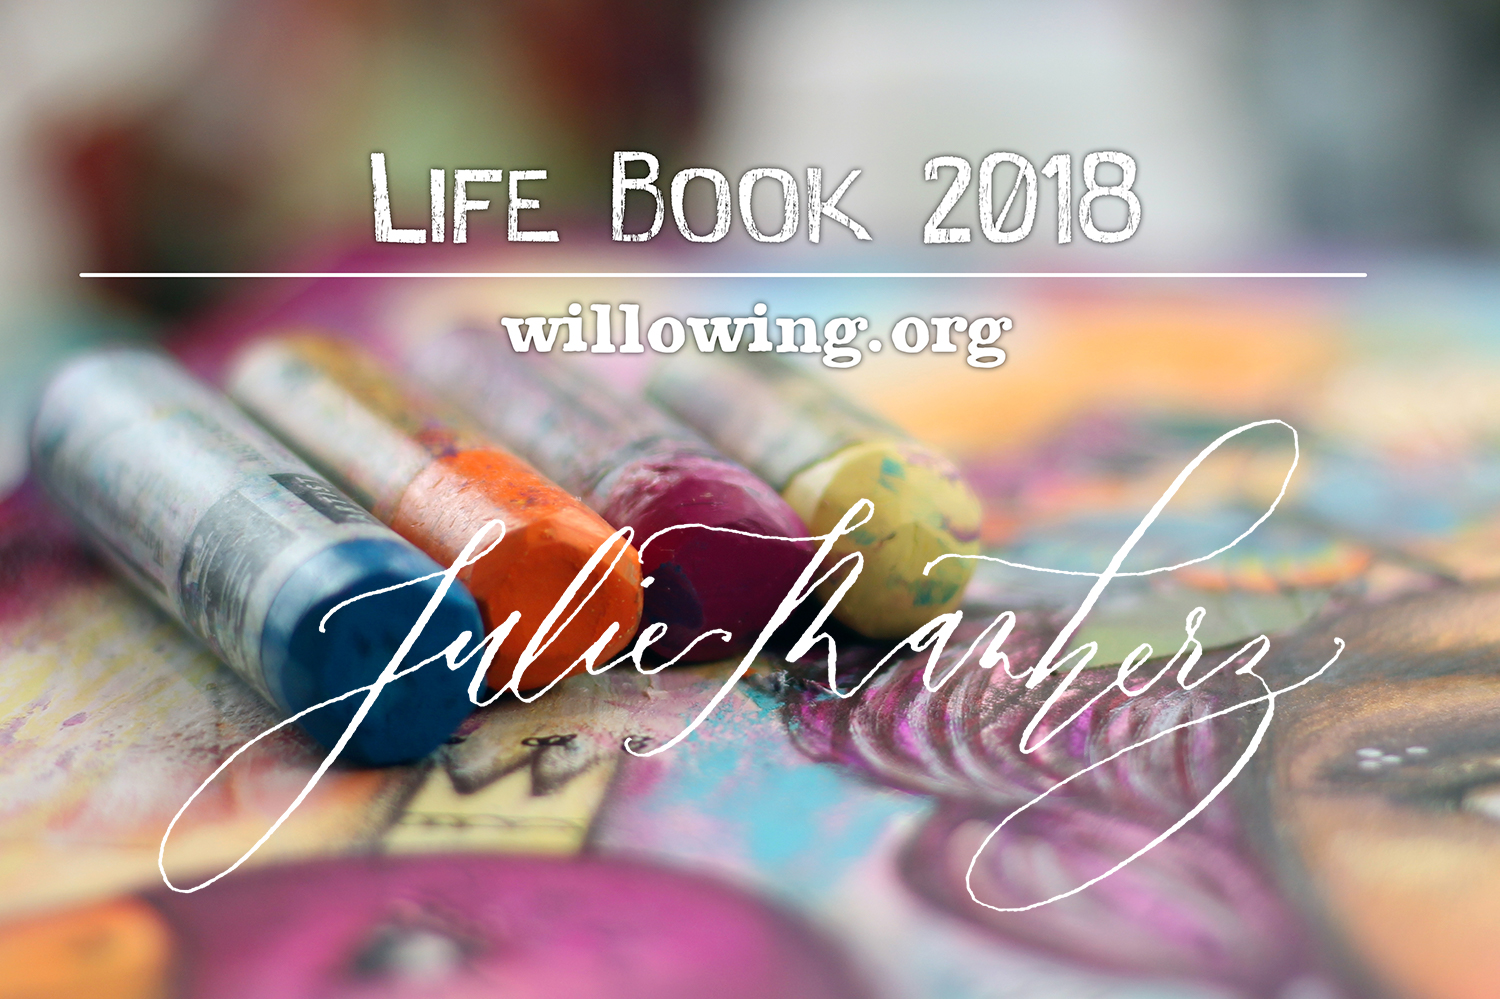 and the winner is... Julie Manherz!!! Life Book 2018 #lifebook2018